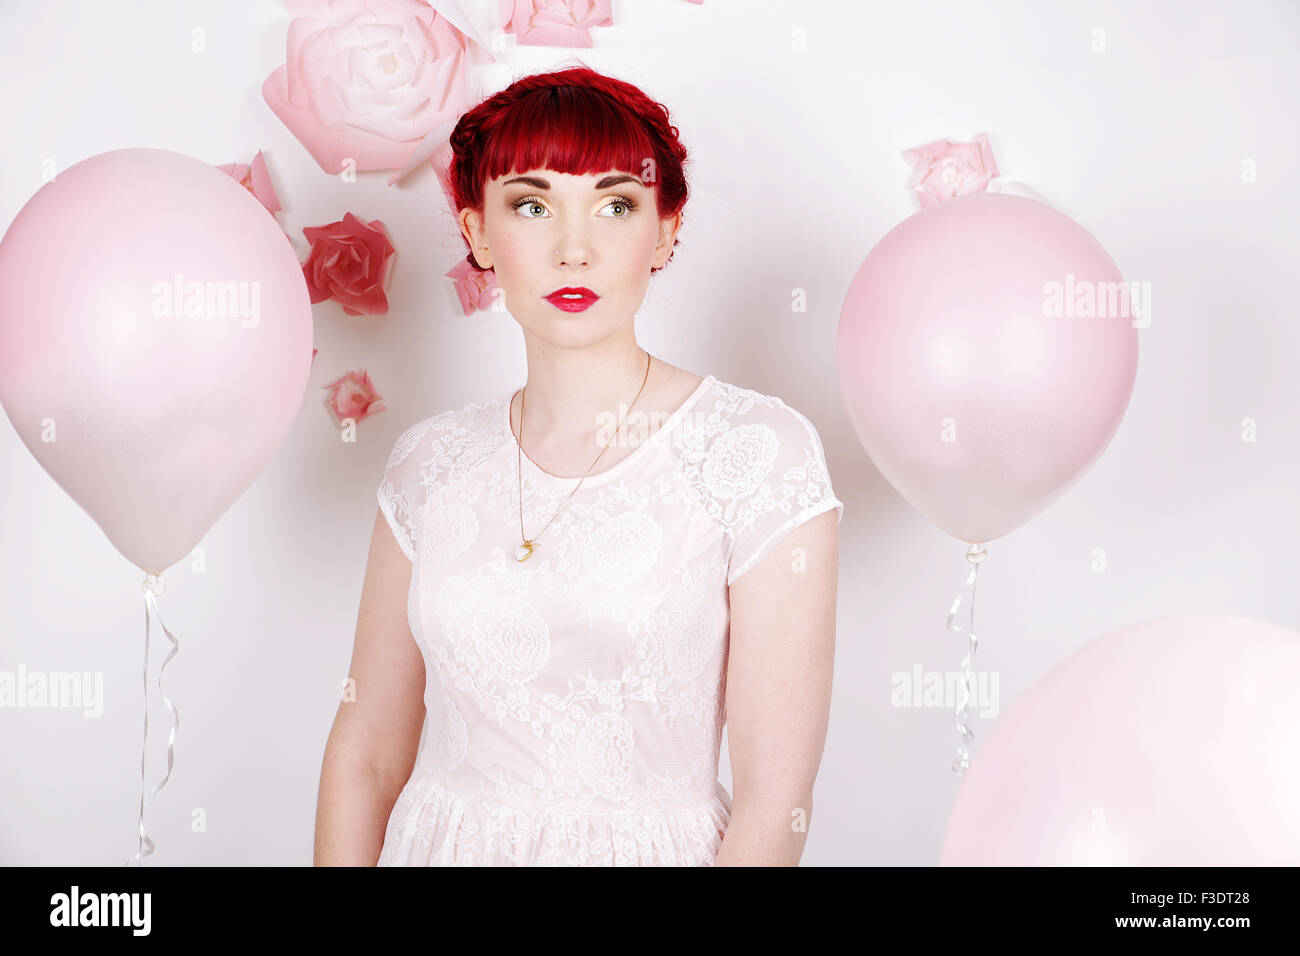 Beautifully romantic red haired girl in a contemporary studio setting - Stock Image